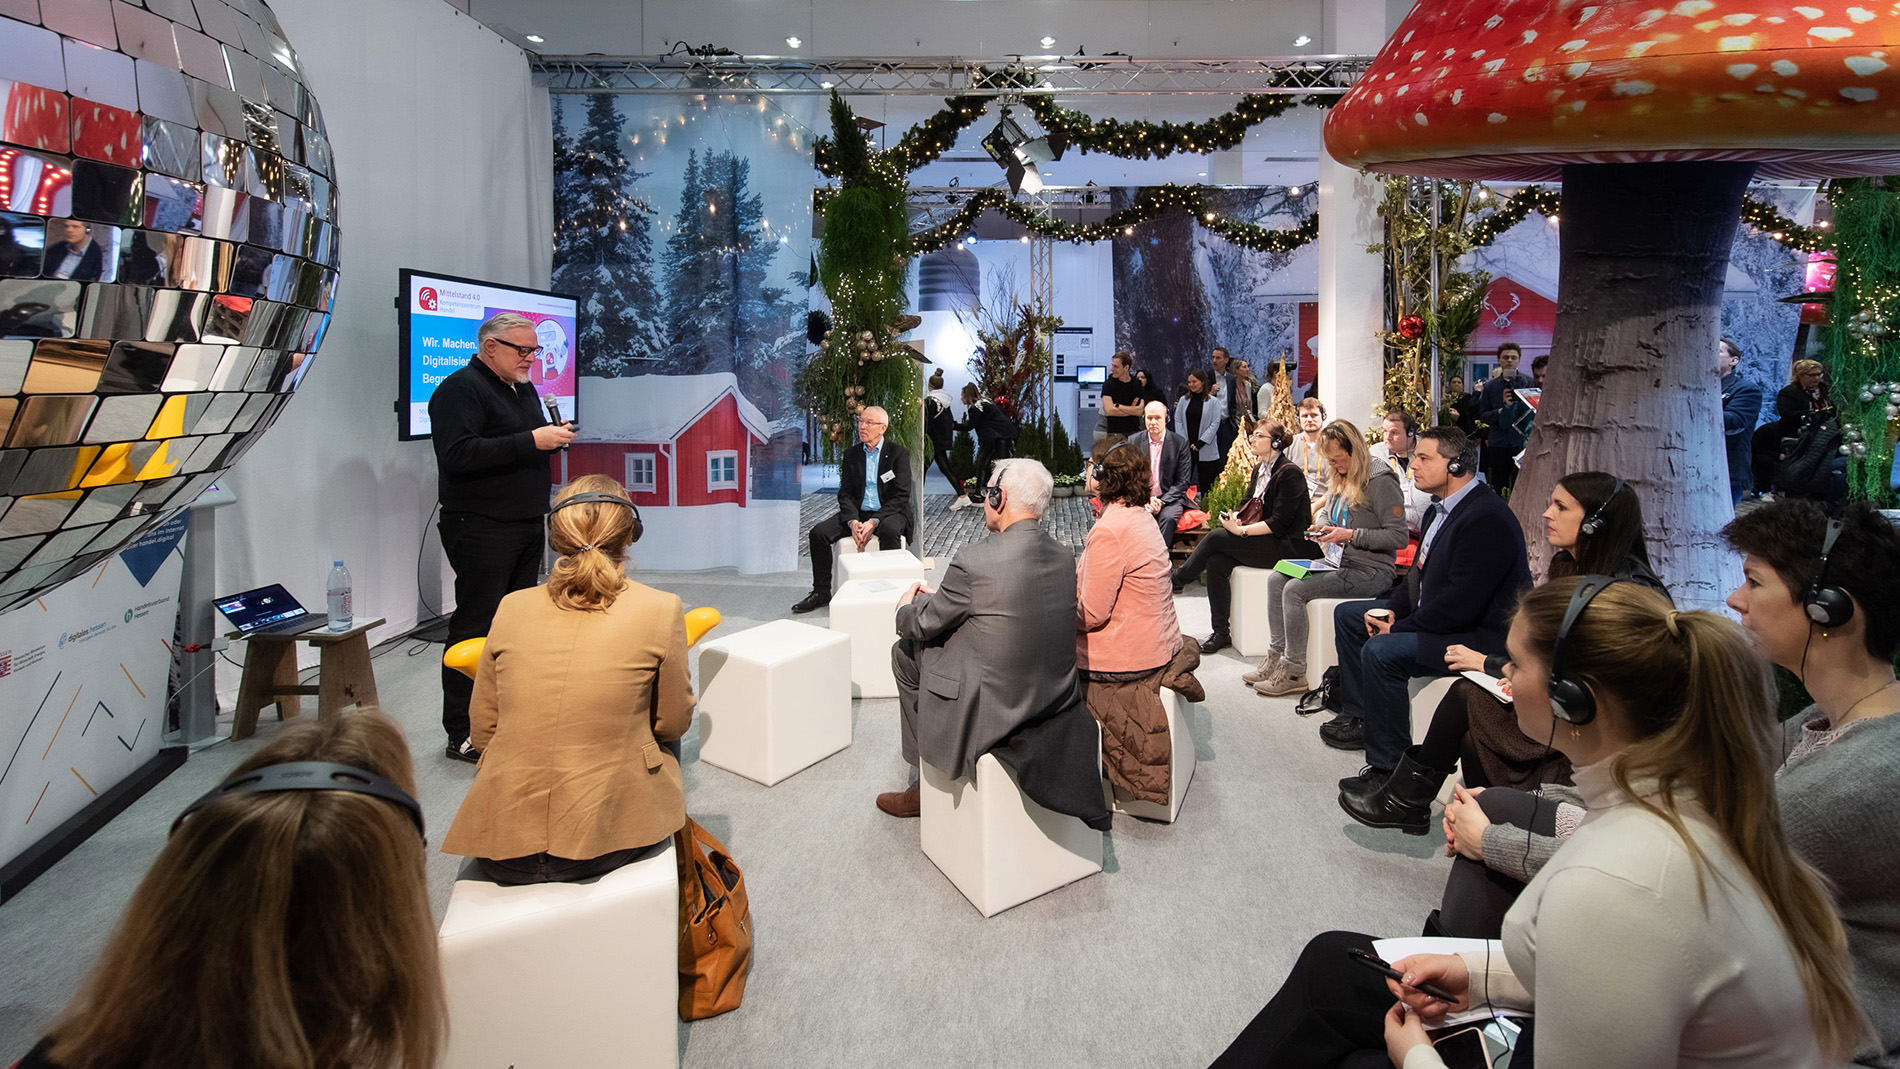 Lecture in the Christmasworld retail boulevard